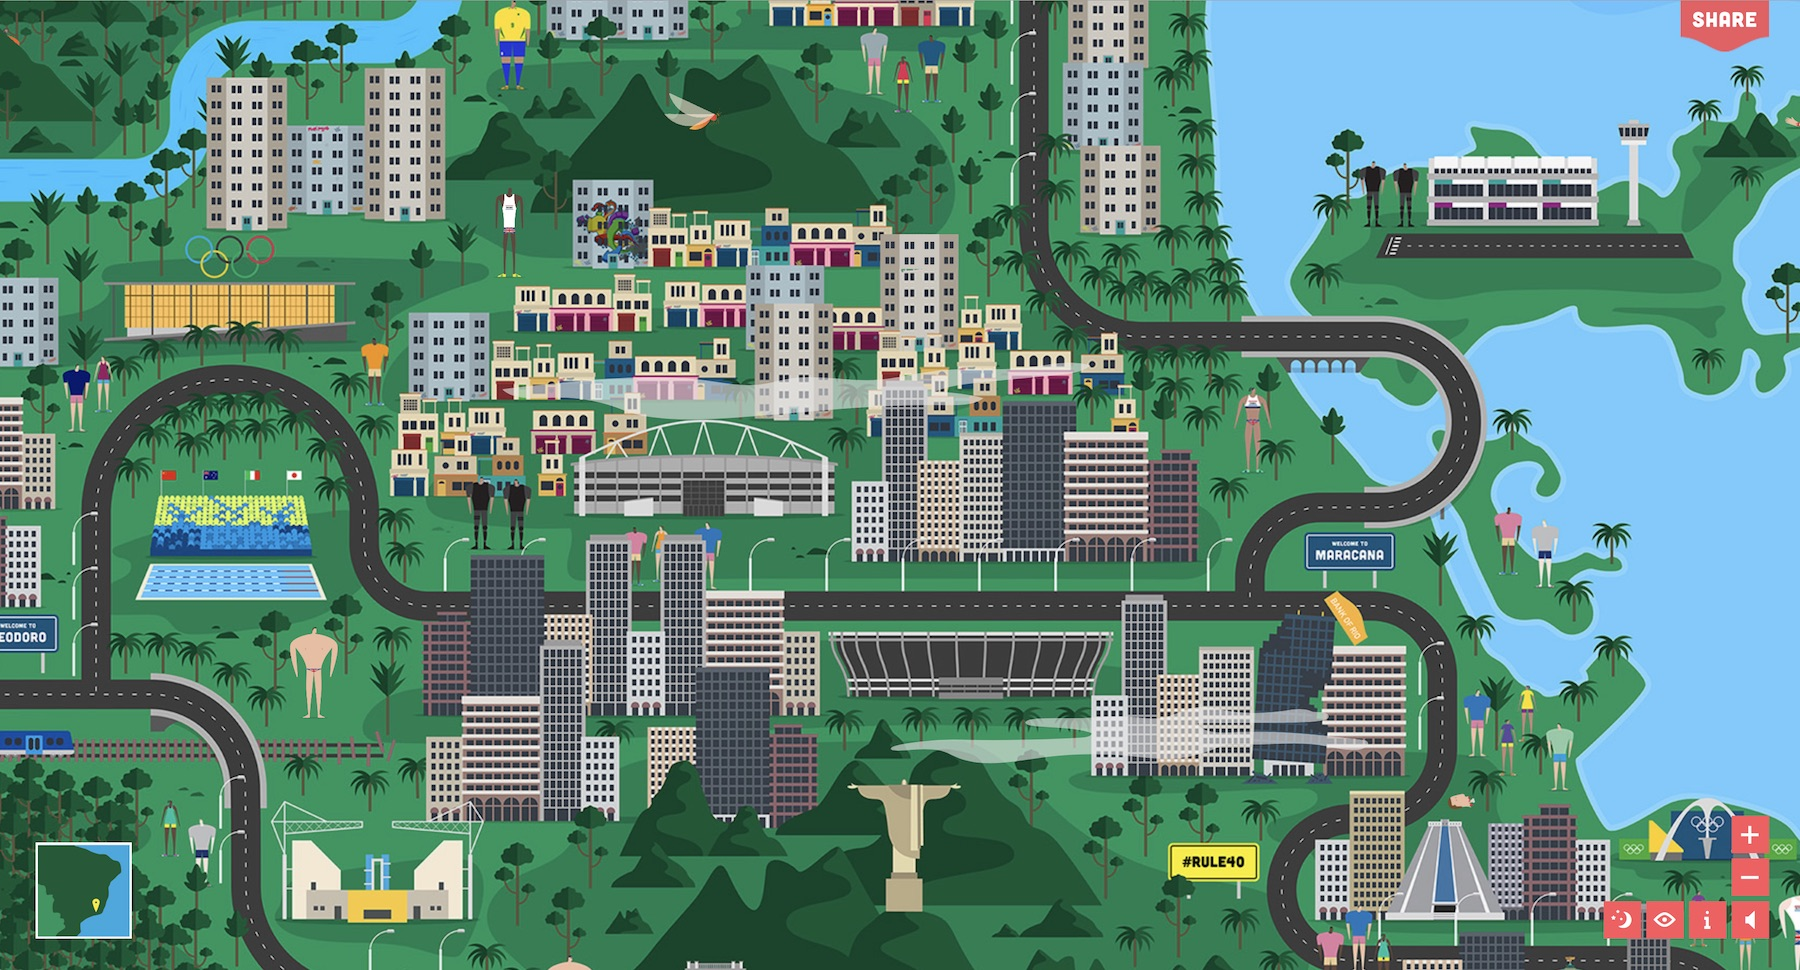 Mapping the Rio Olympics